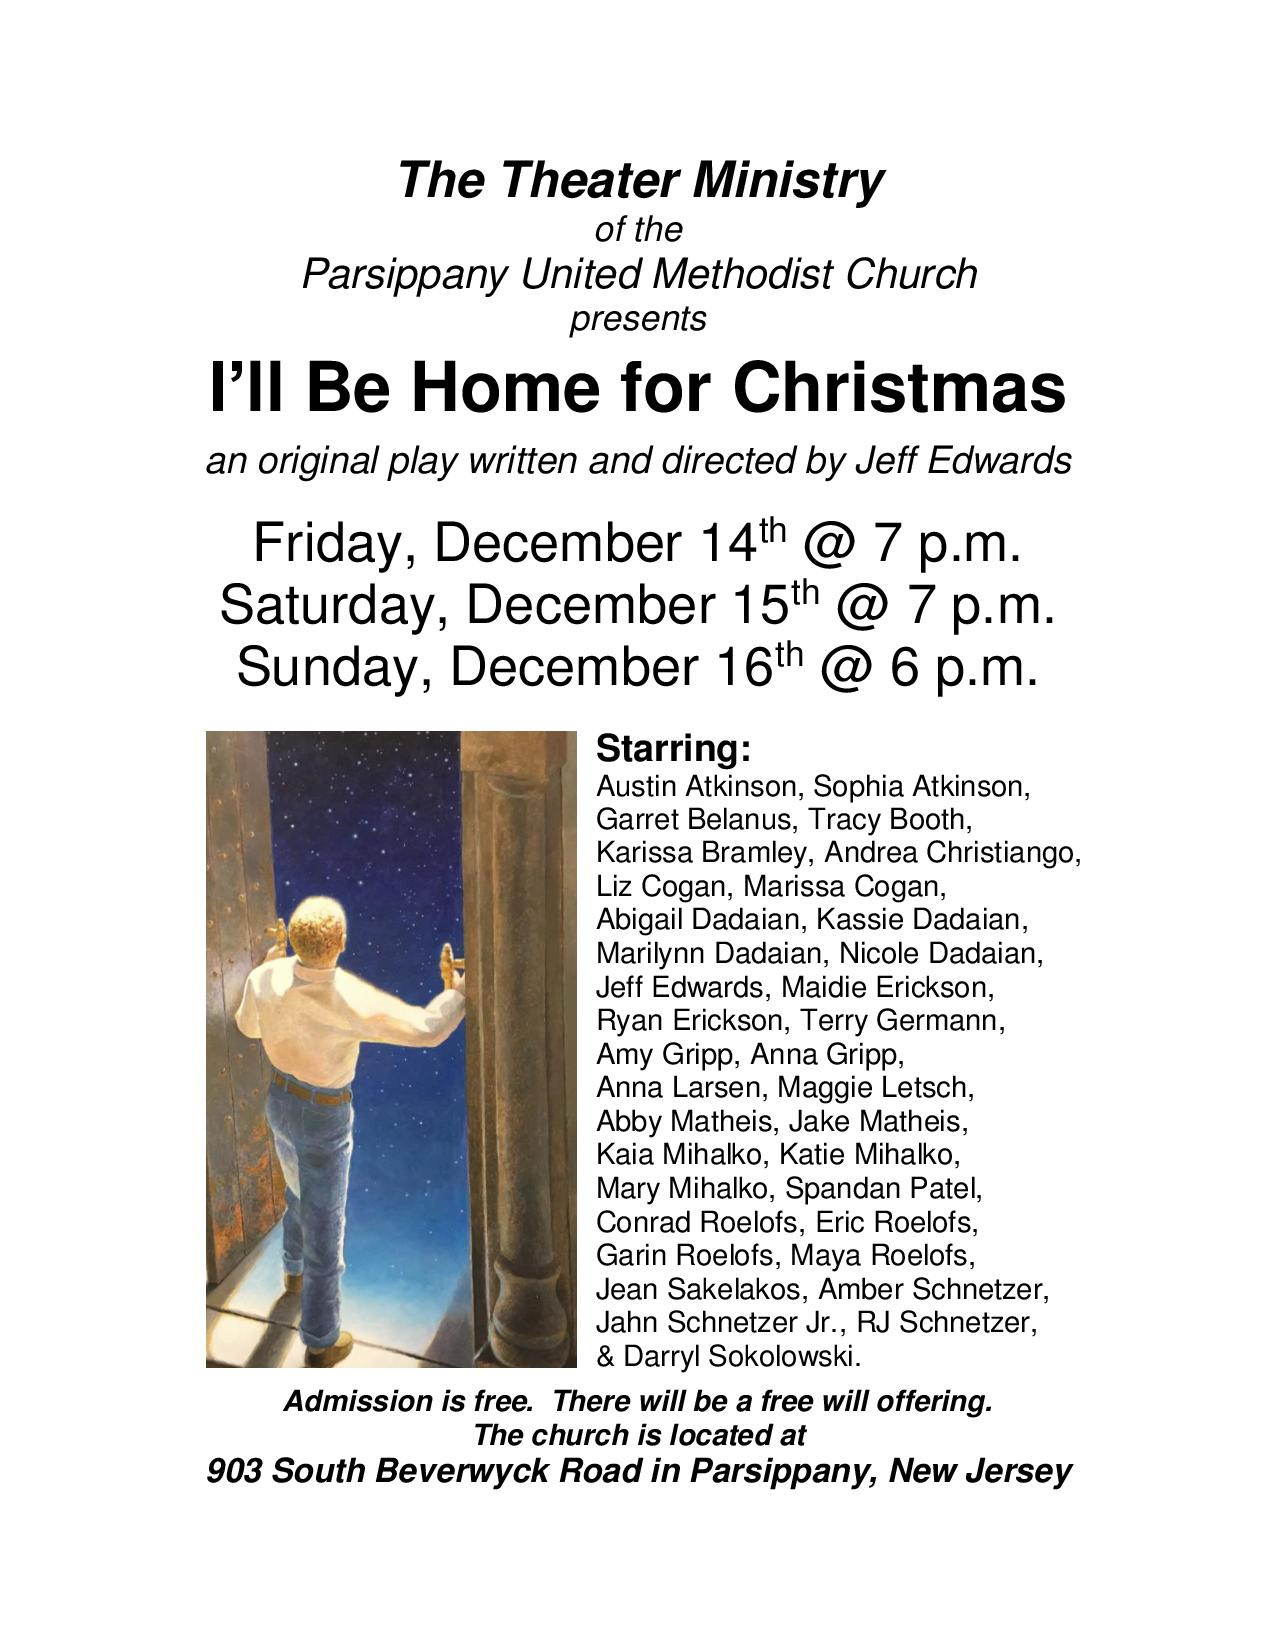 Ill Be Home For Christmas Cast.I Ll Be Home For Christmas Parsippany United Methodist Church